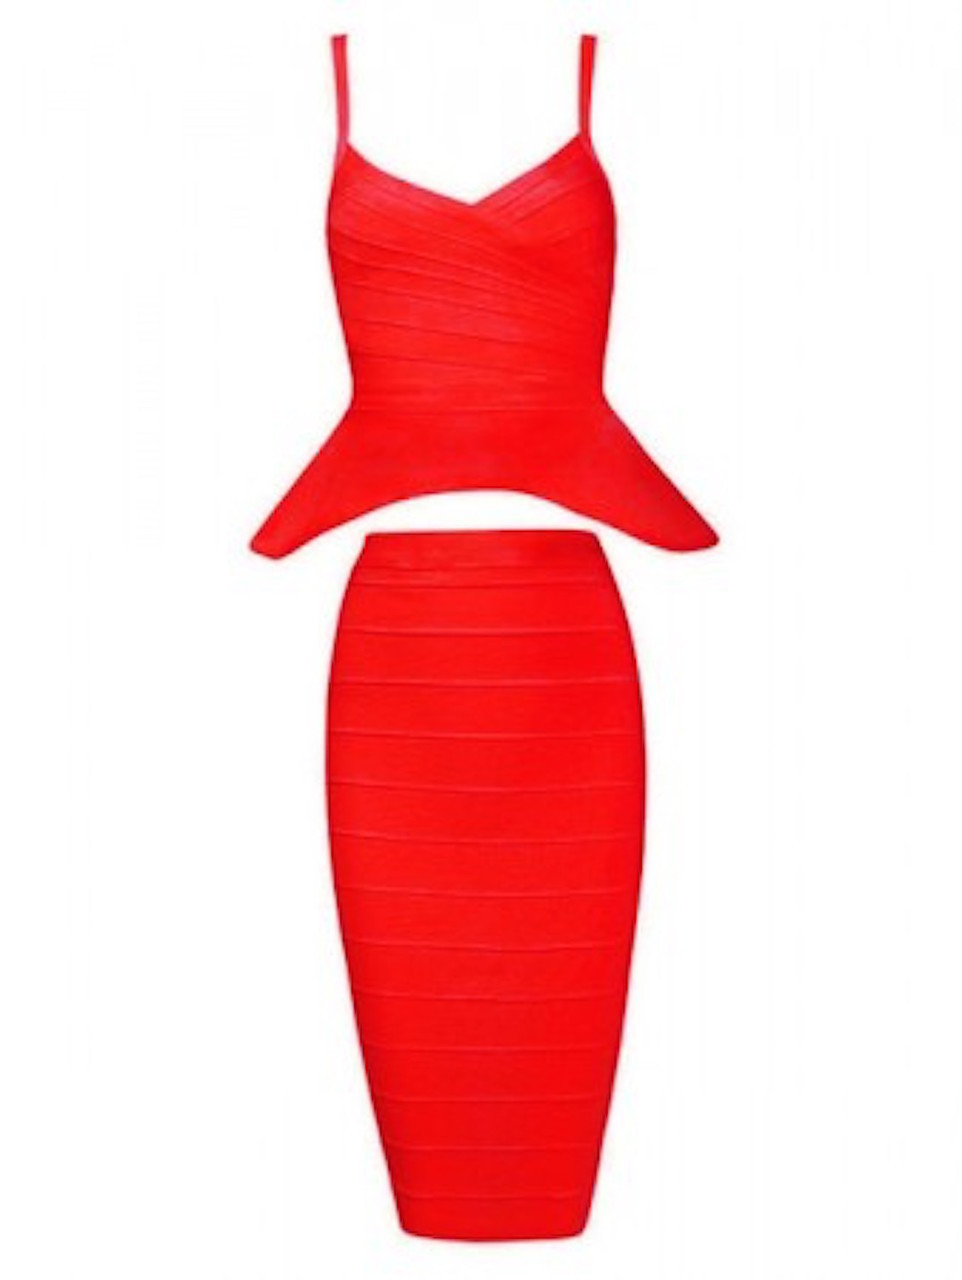 Red Two Piece Peplum Top Midi Bandage Dress Skirt